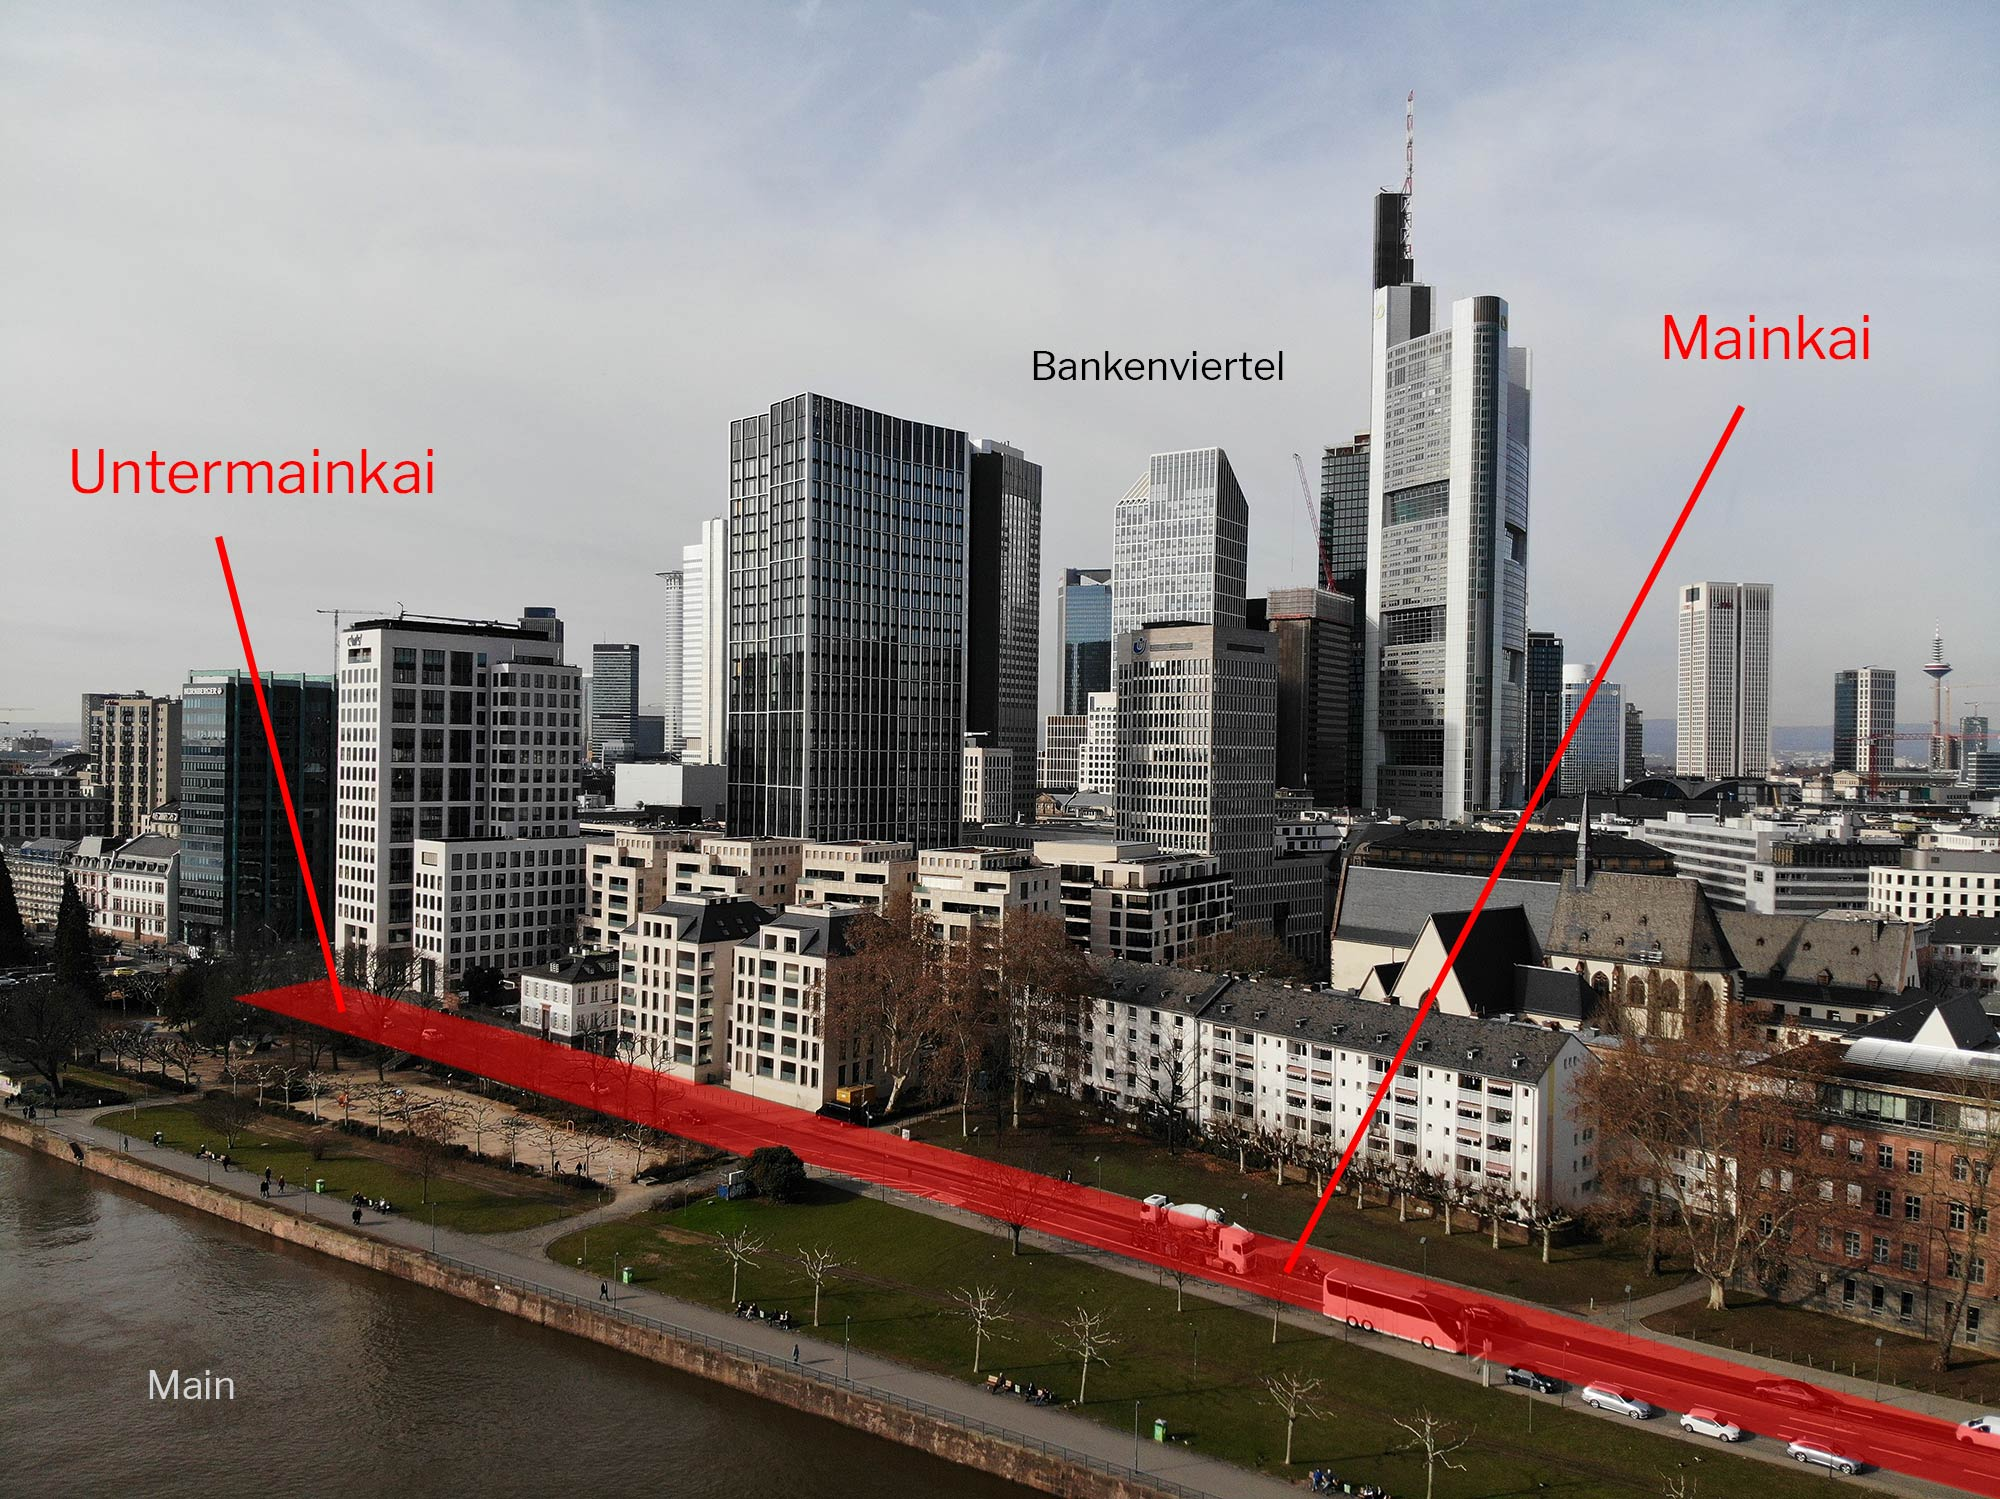 Mainkai Sperrung - Mainkai Petition - Untermainkai - Frankfurt am Main Bankenviertel